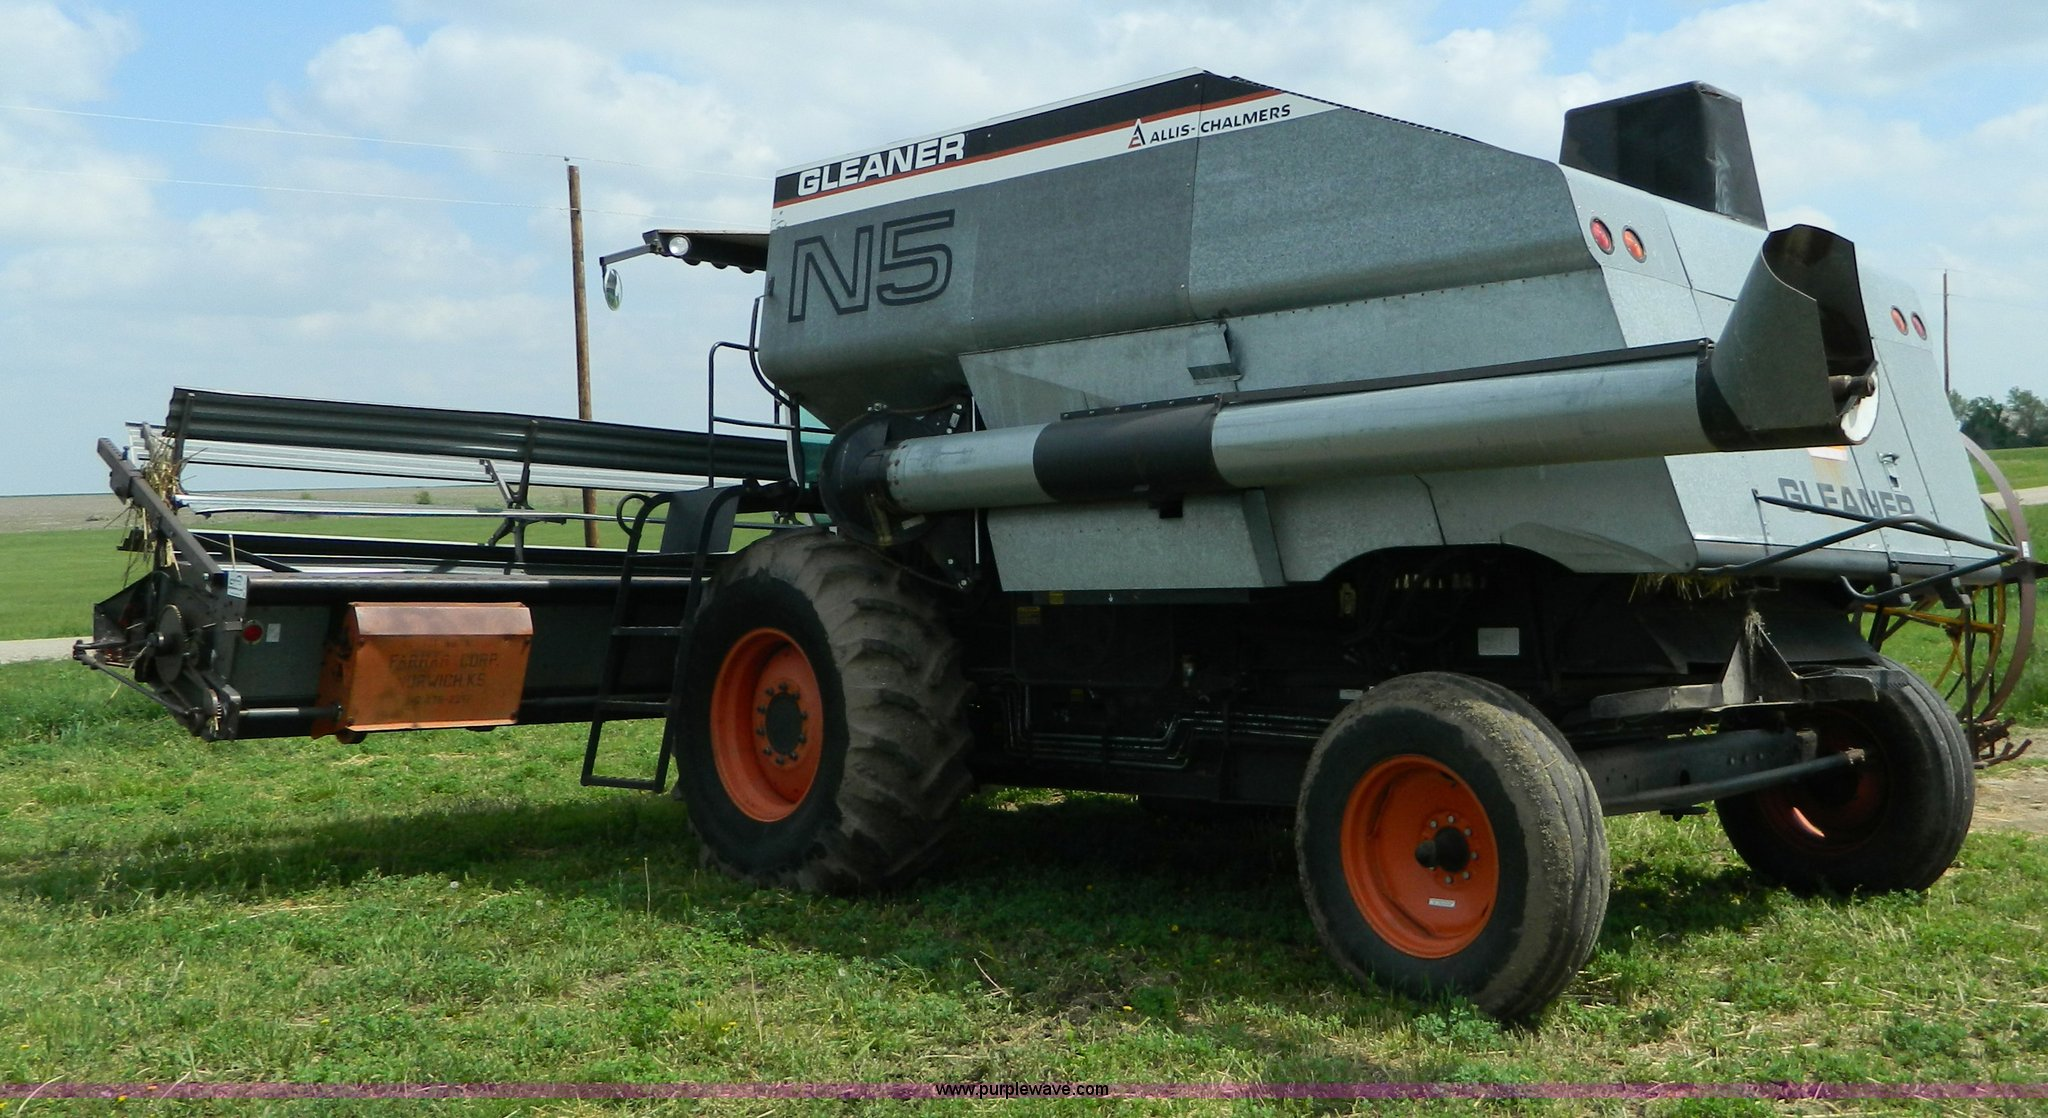 1981 allis chalmers gleaner n5 combine item b3671 sold full size in new window publicscrutiny Images